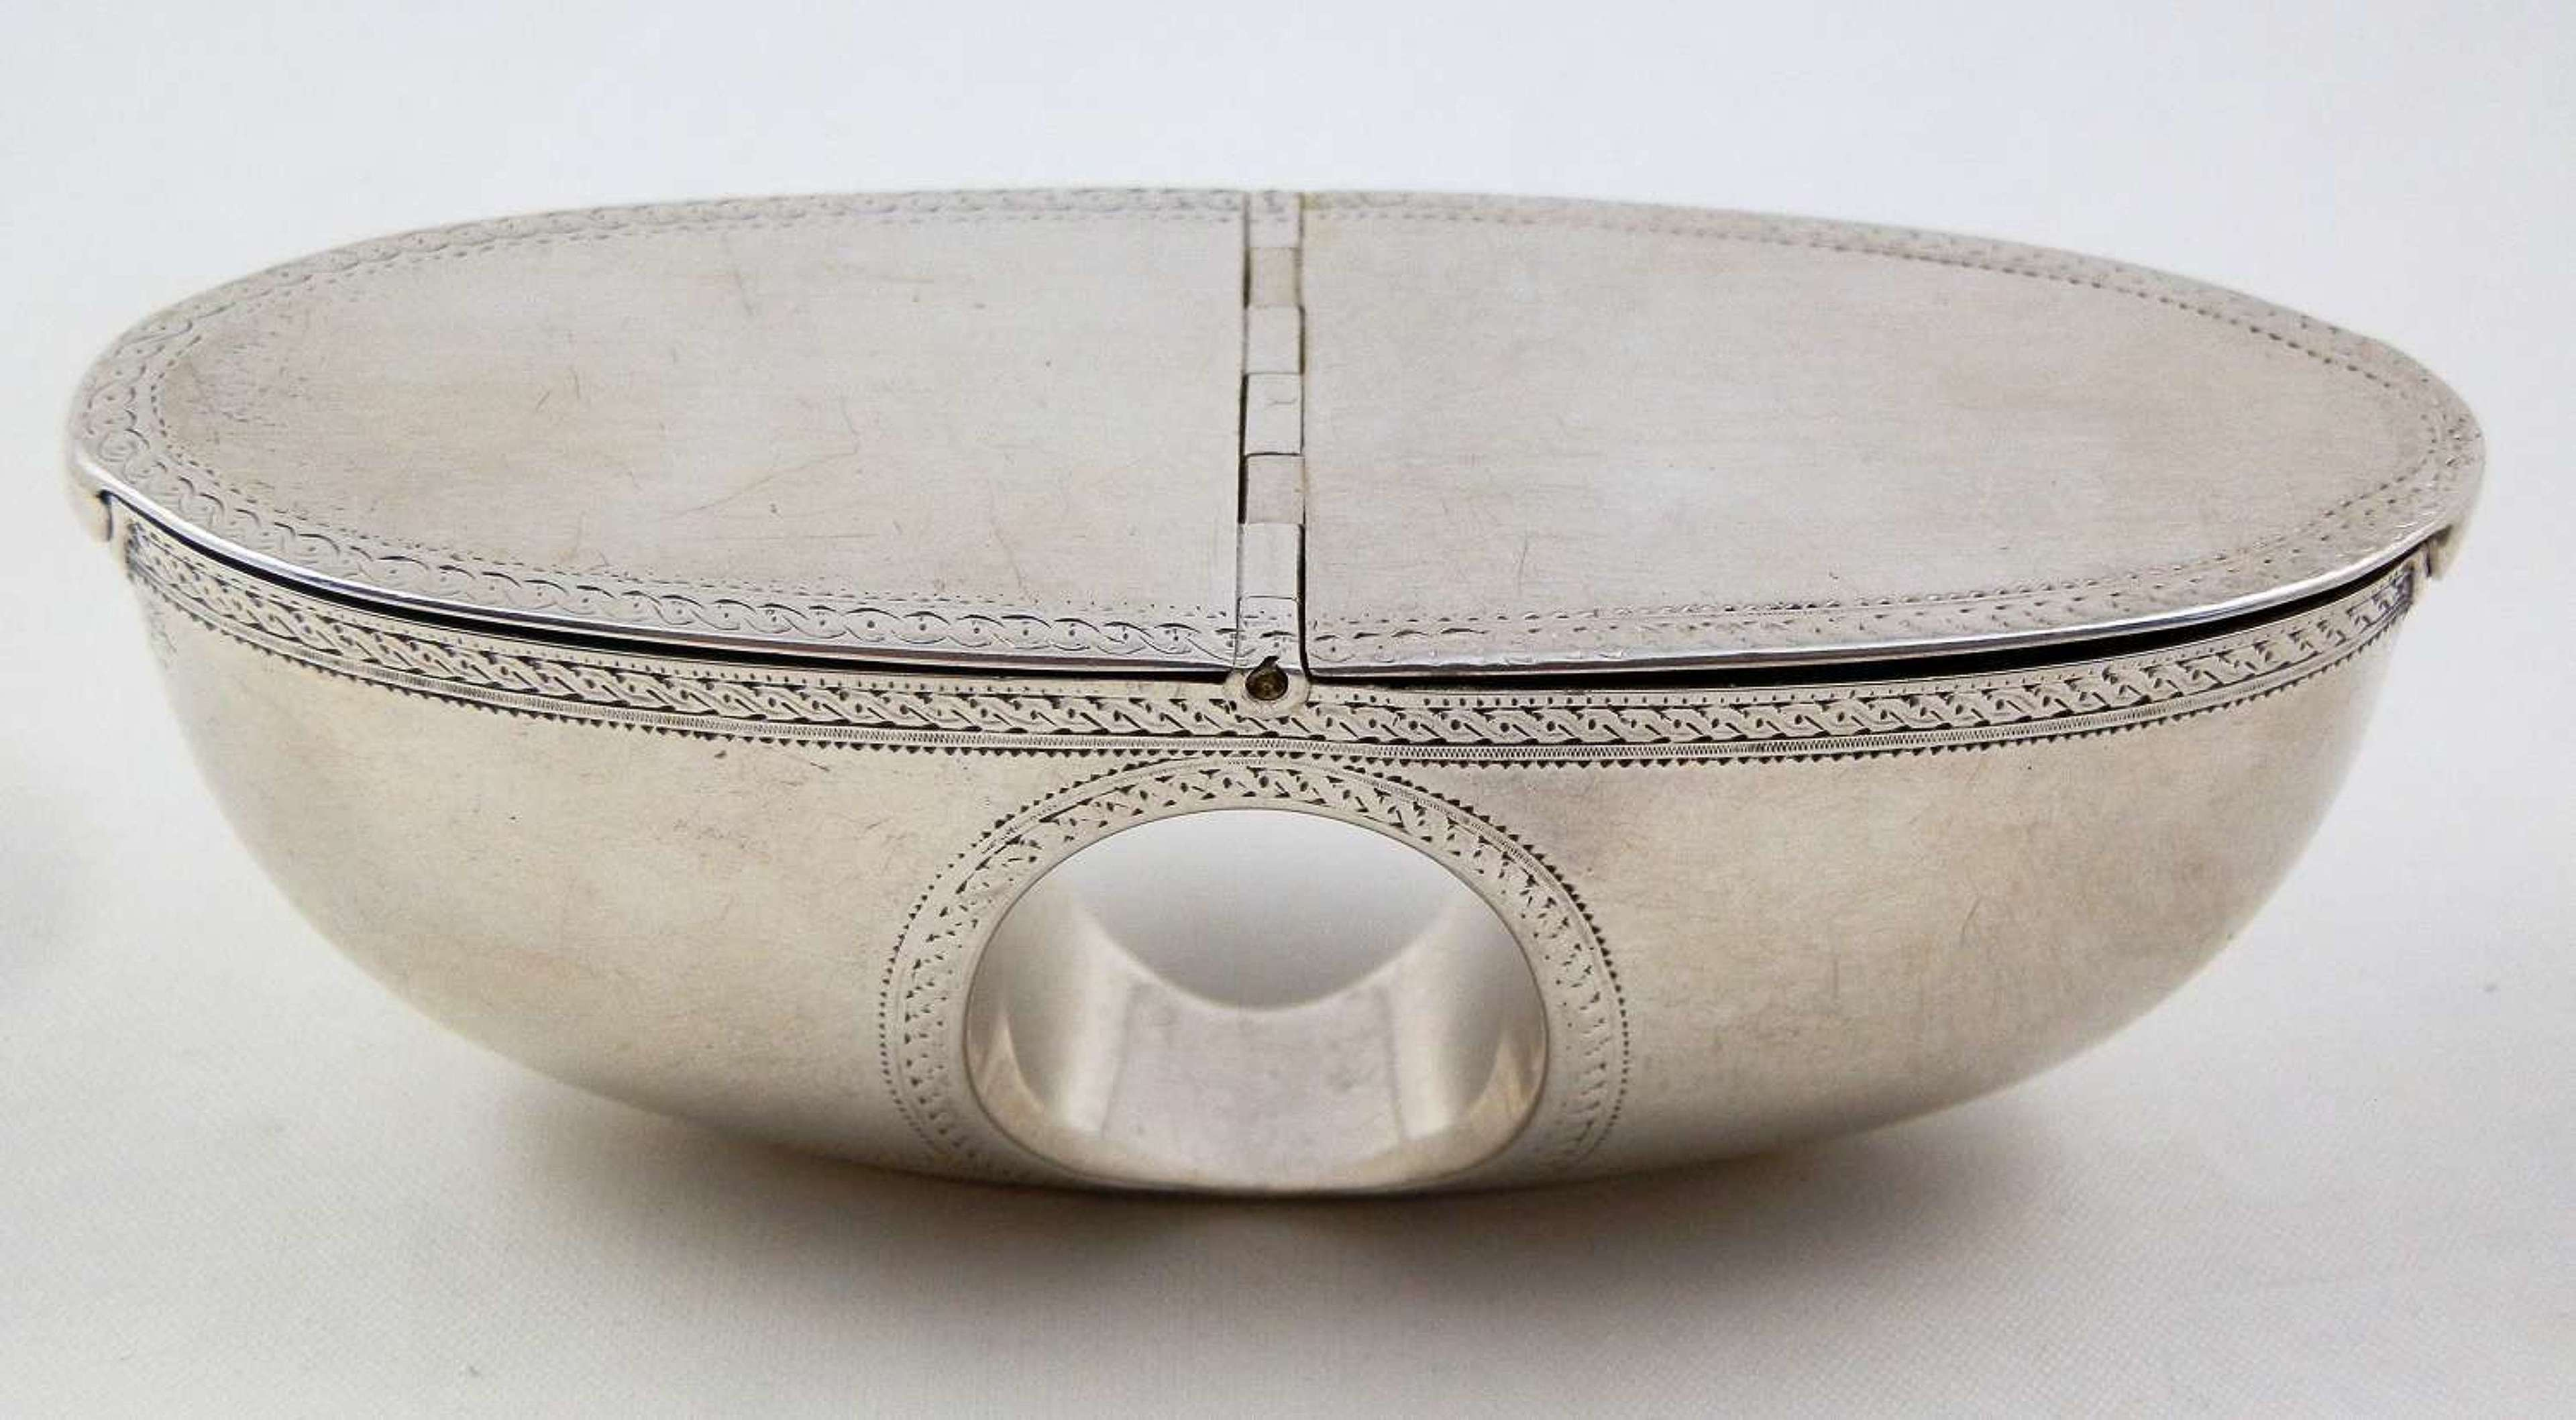 A very rare George III silver thumb hole snuff box, c.1780